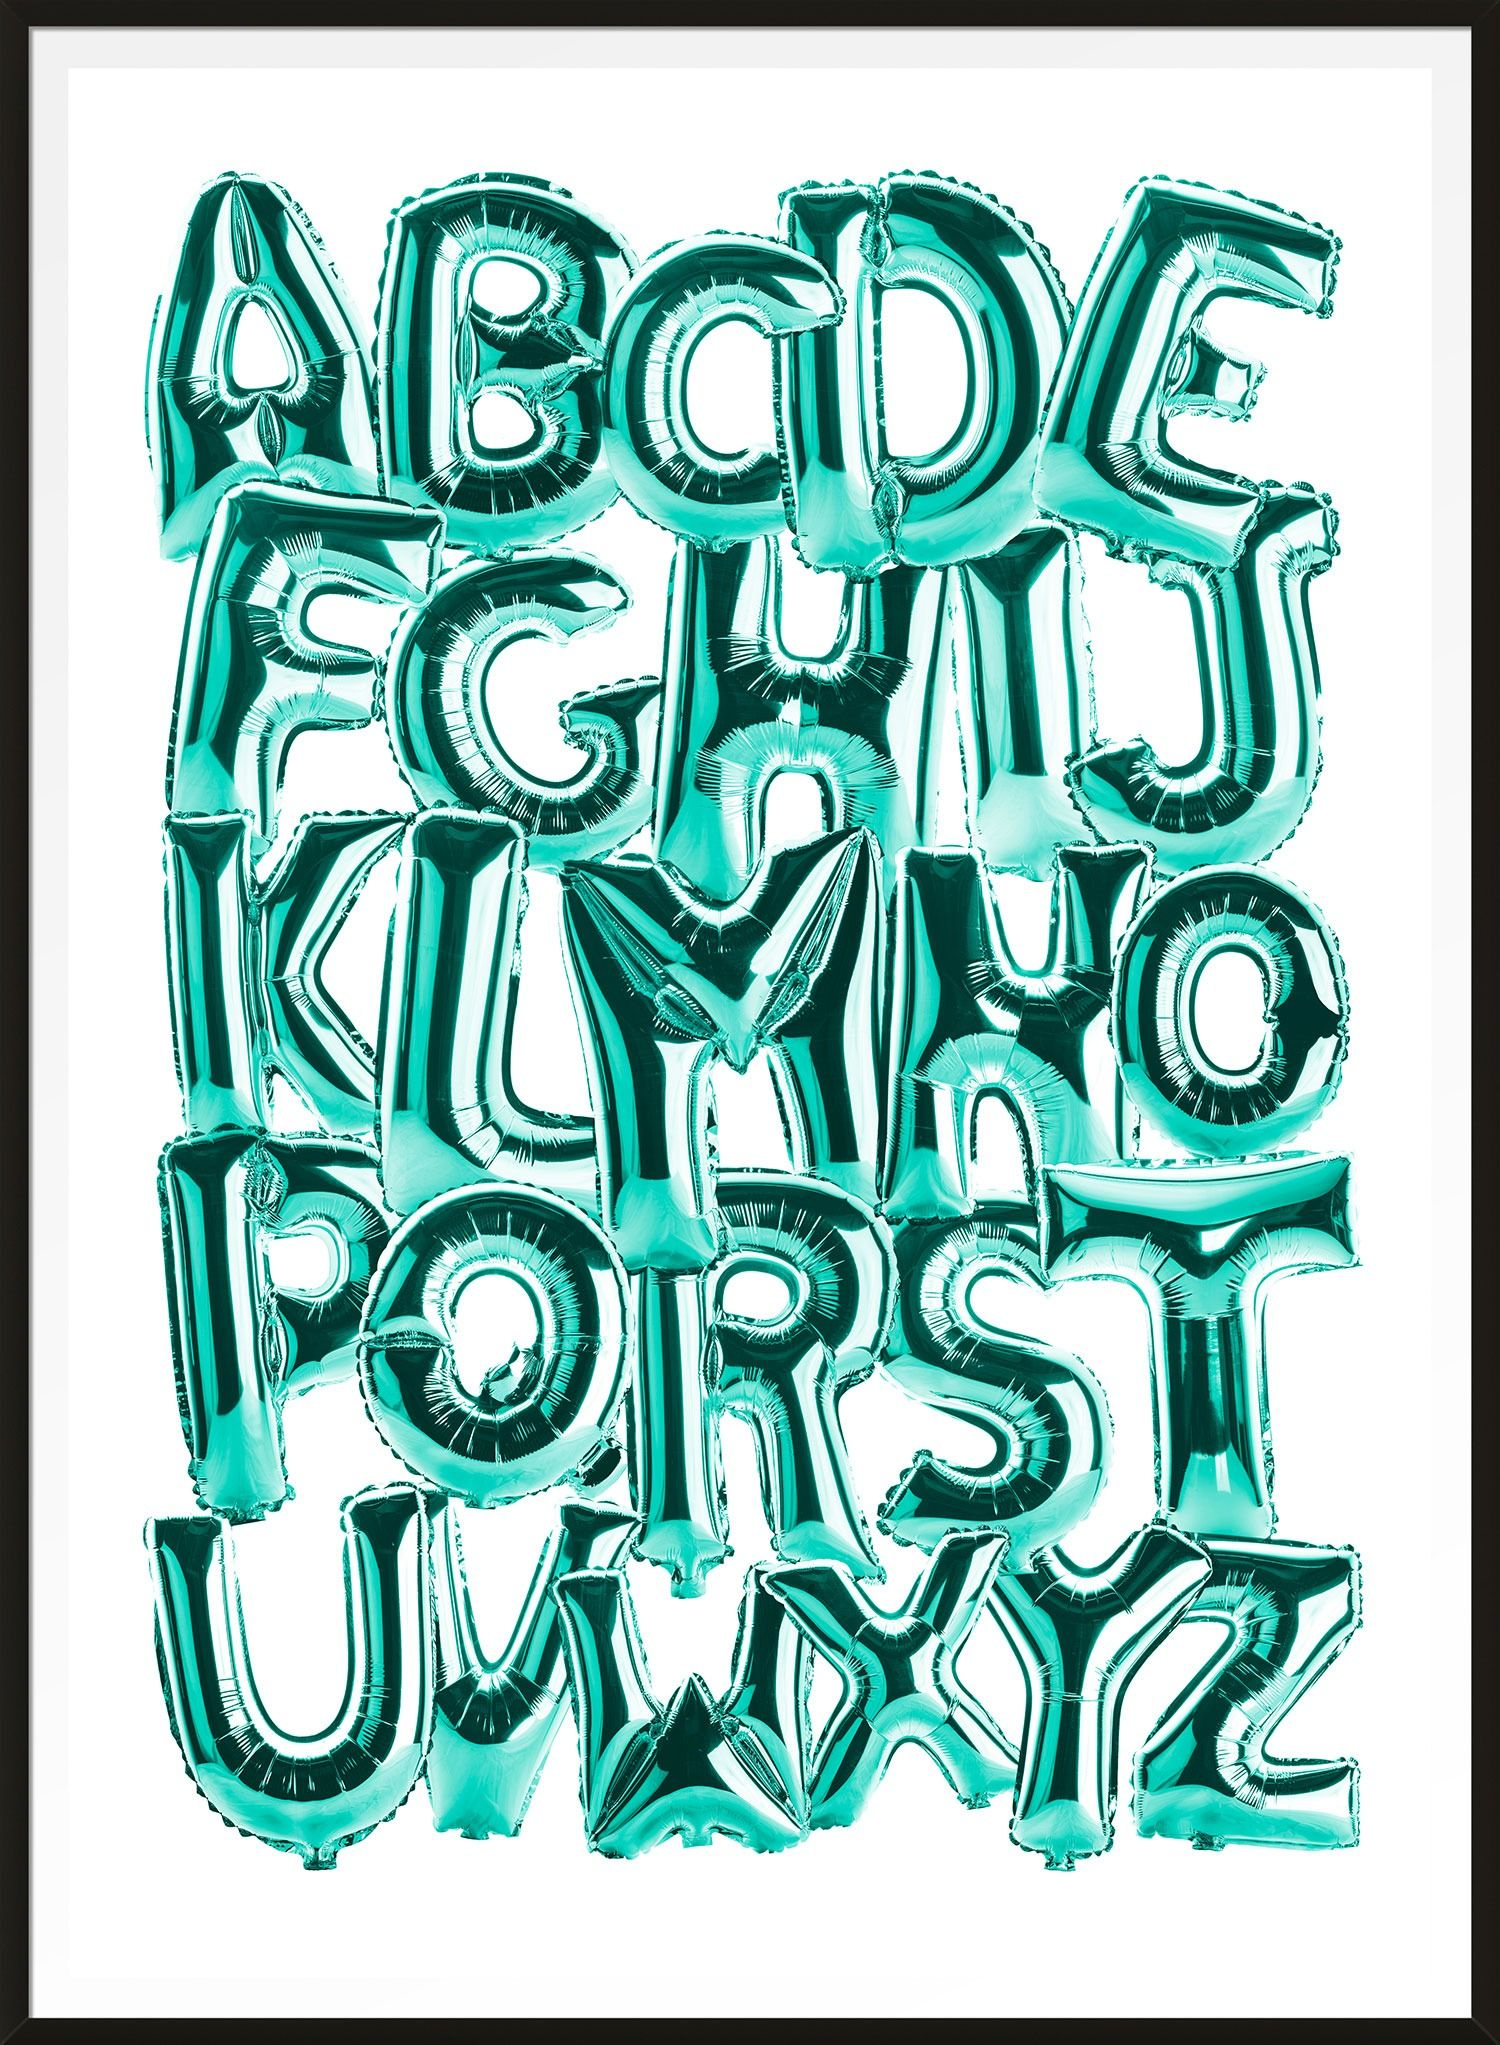 Foil Balloons Alphabet Educational Teal Print How to